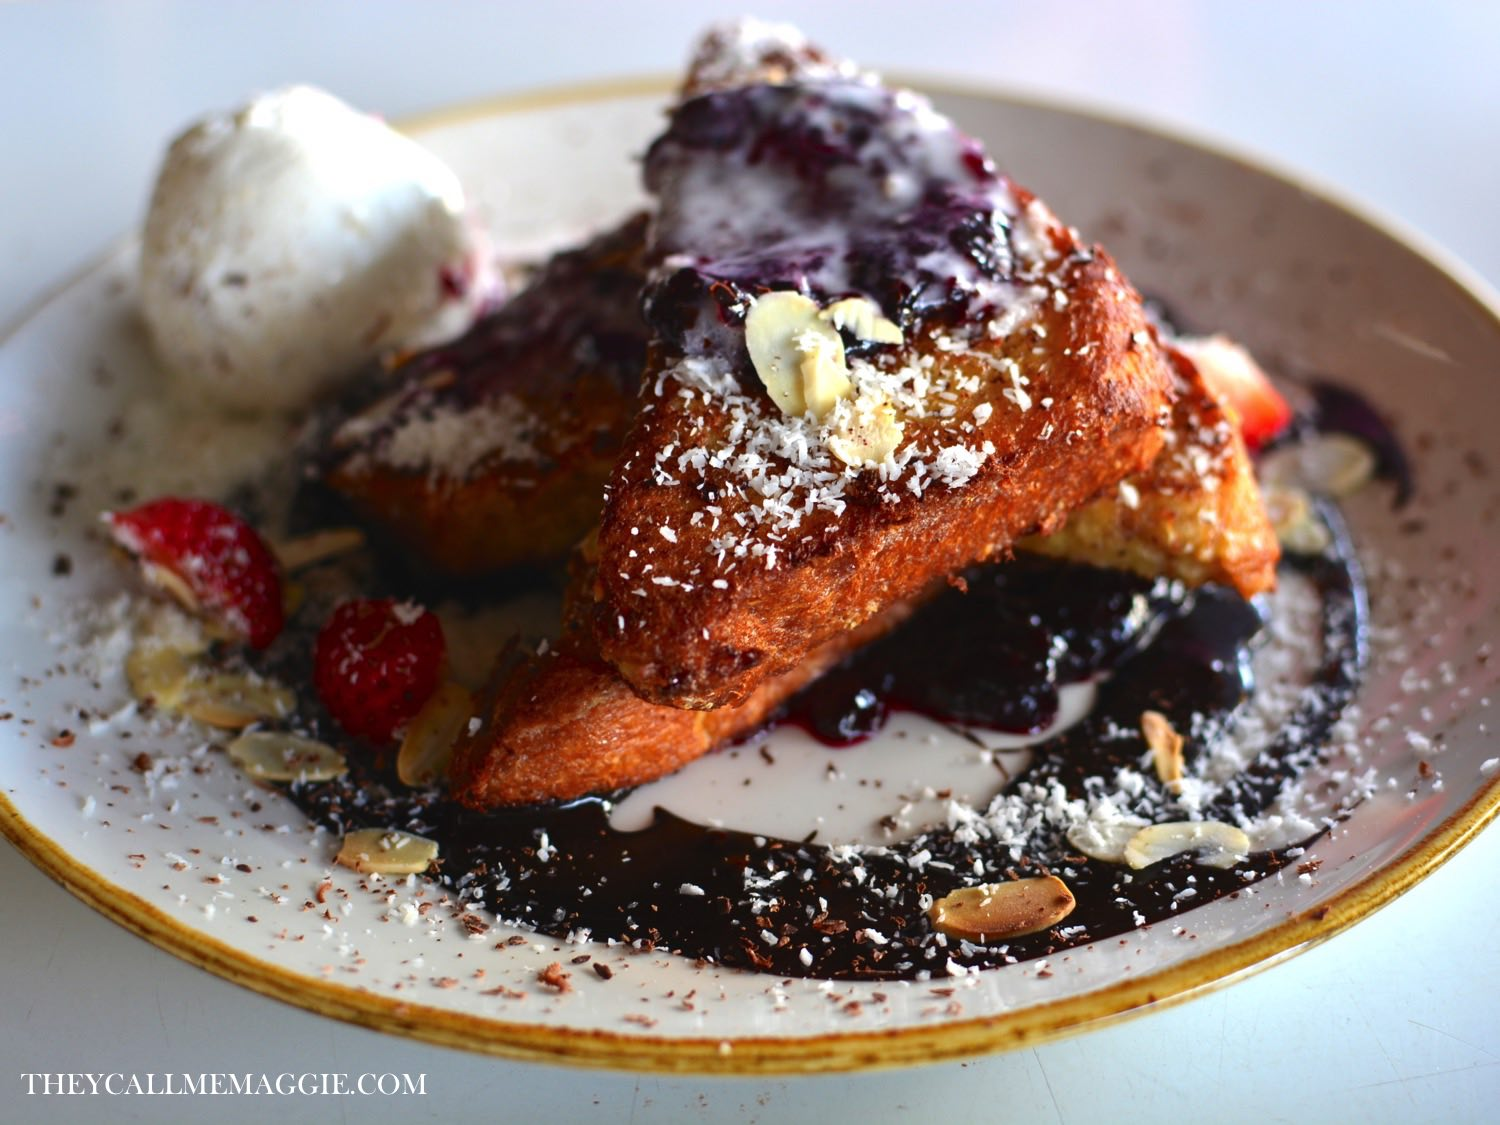 Black forest french toast - with Morello cherry jam, chocolate cacao sauce, toasted almond flakes and coconut ice cream